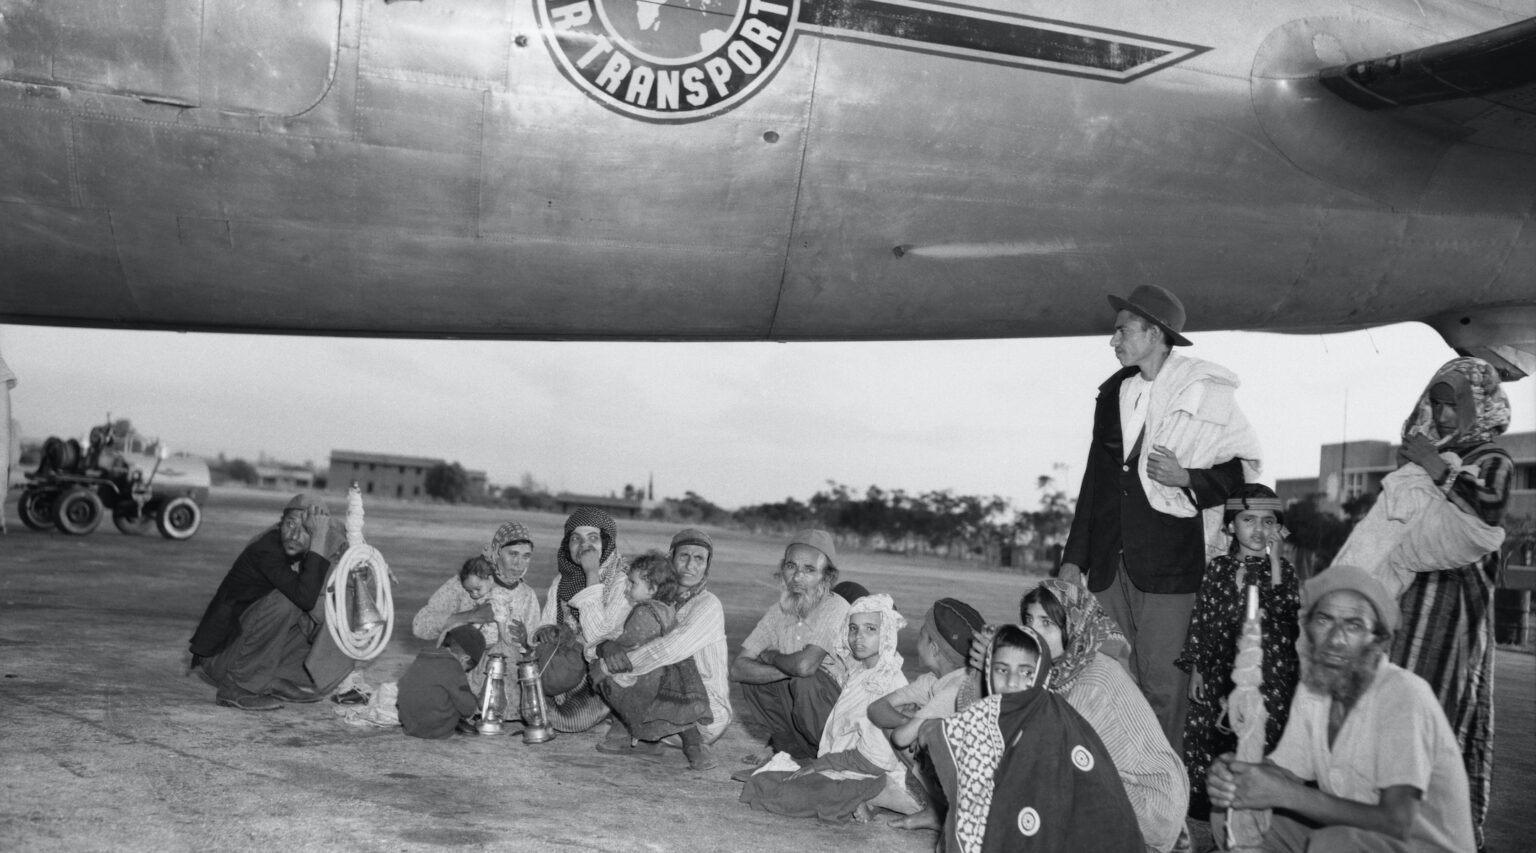 Black and white: A group of men, women and children sit on the tarmac near an old airplane